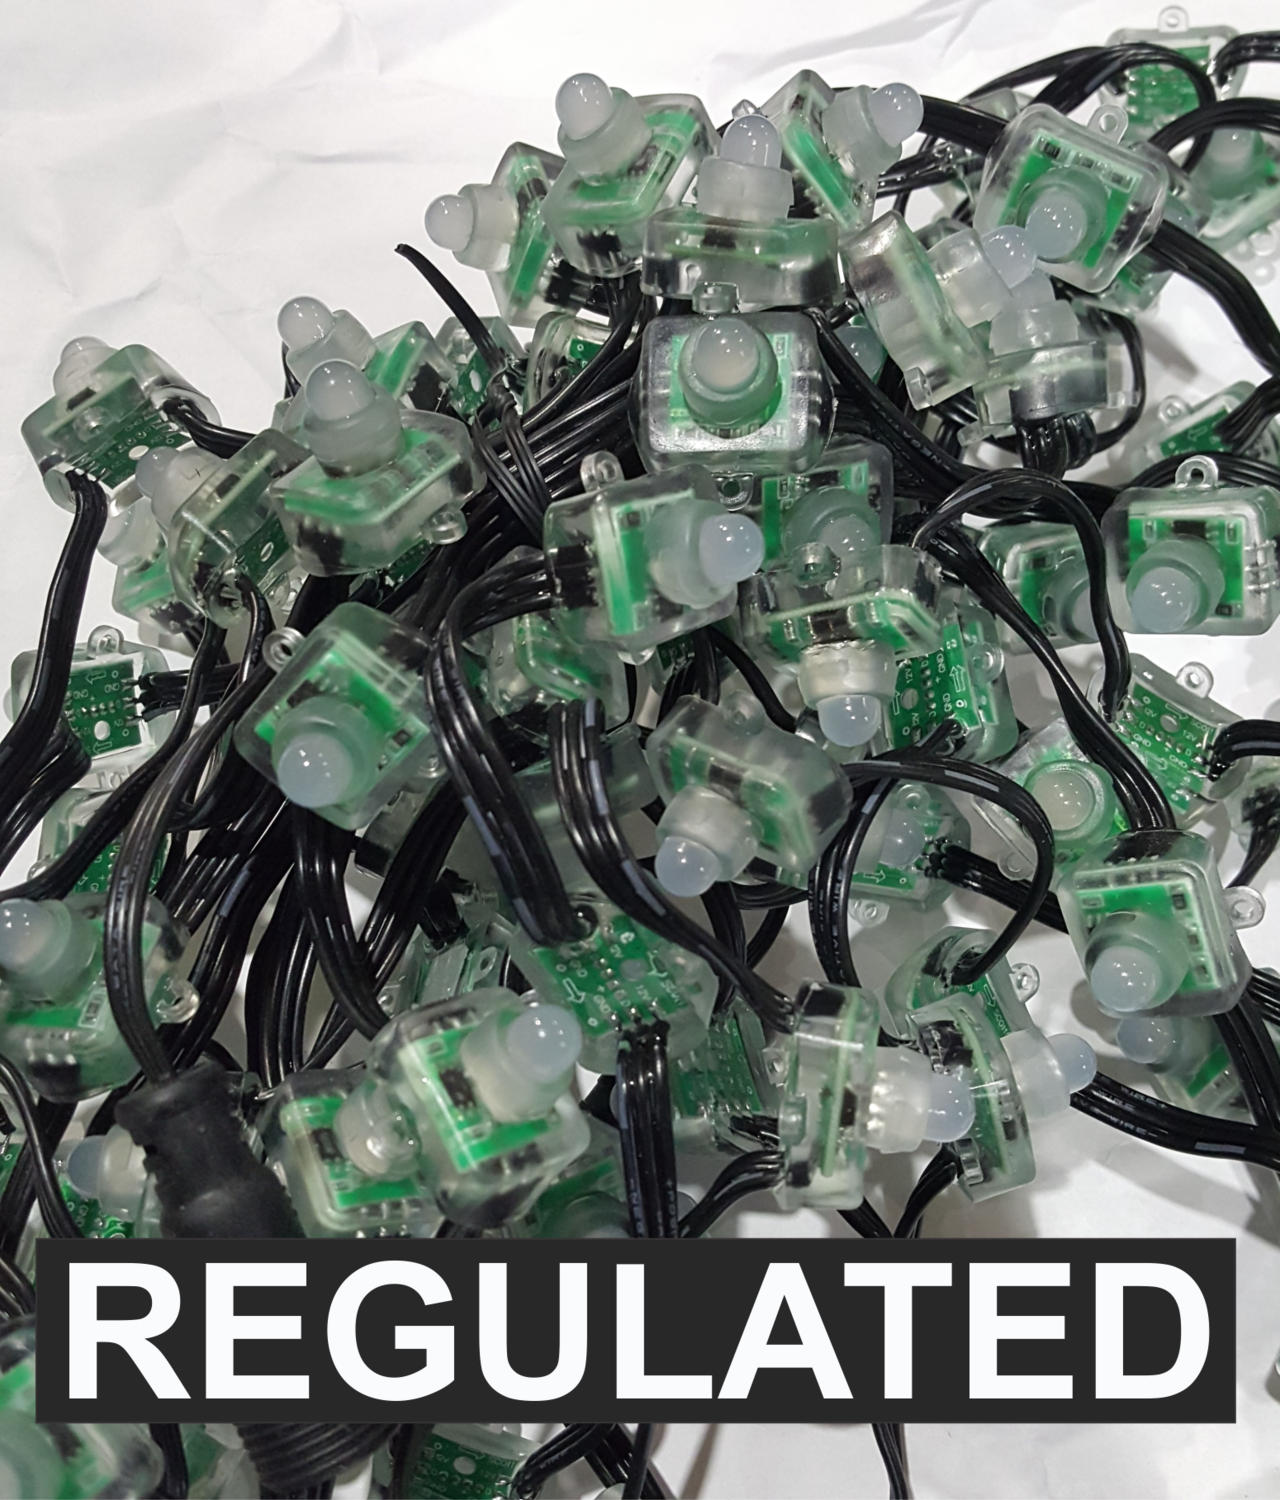 12V WS2811 REGULATED Square Pixels 100 / 50 Count Strings  - SPECIAL ORDER - 4 to 8 weeks for delivery